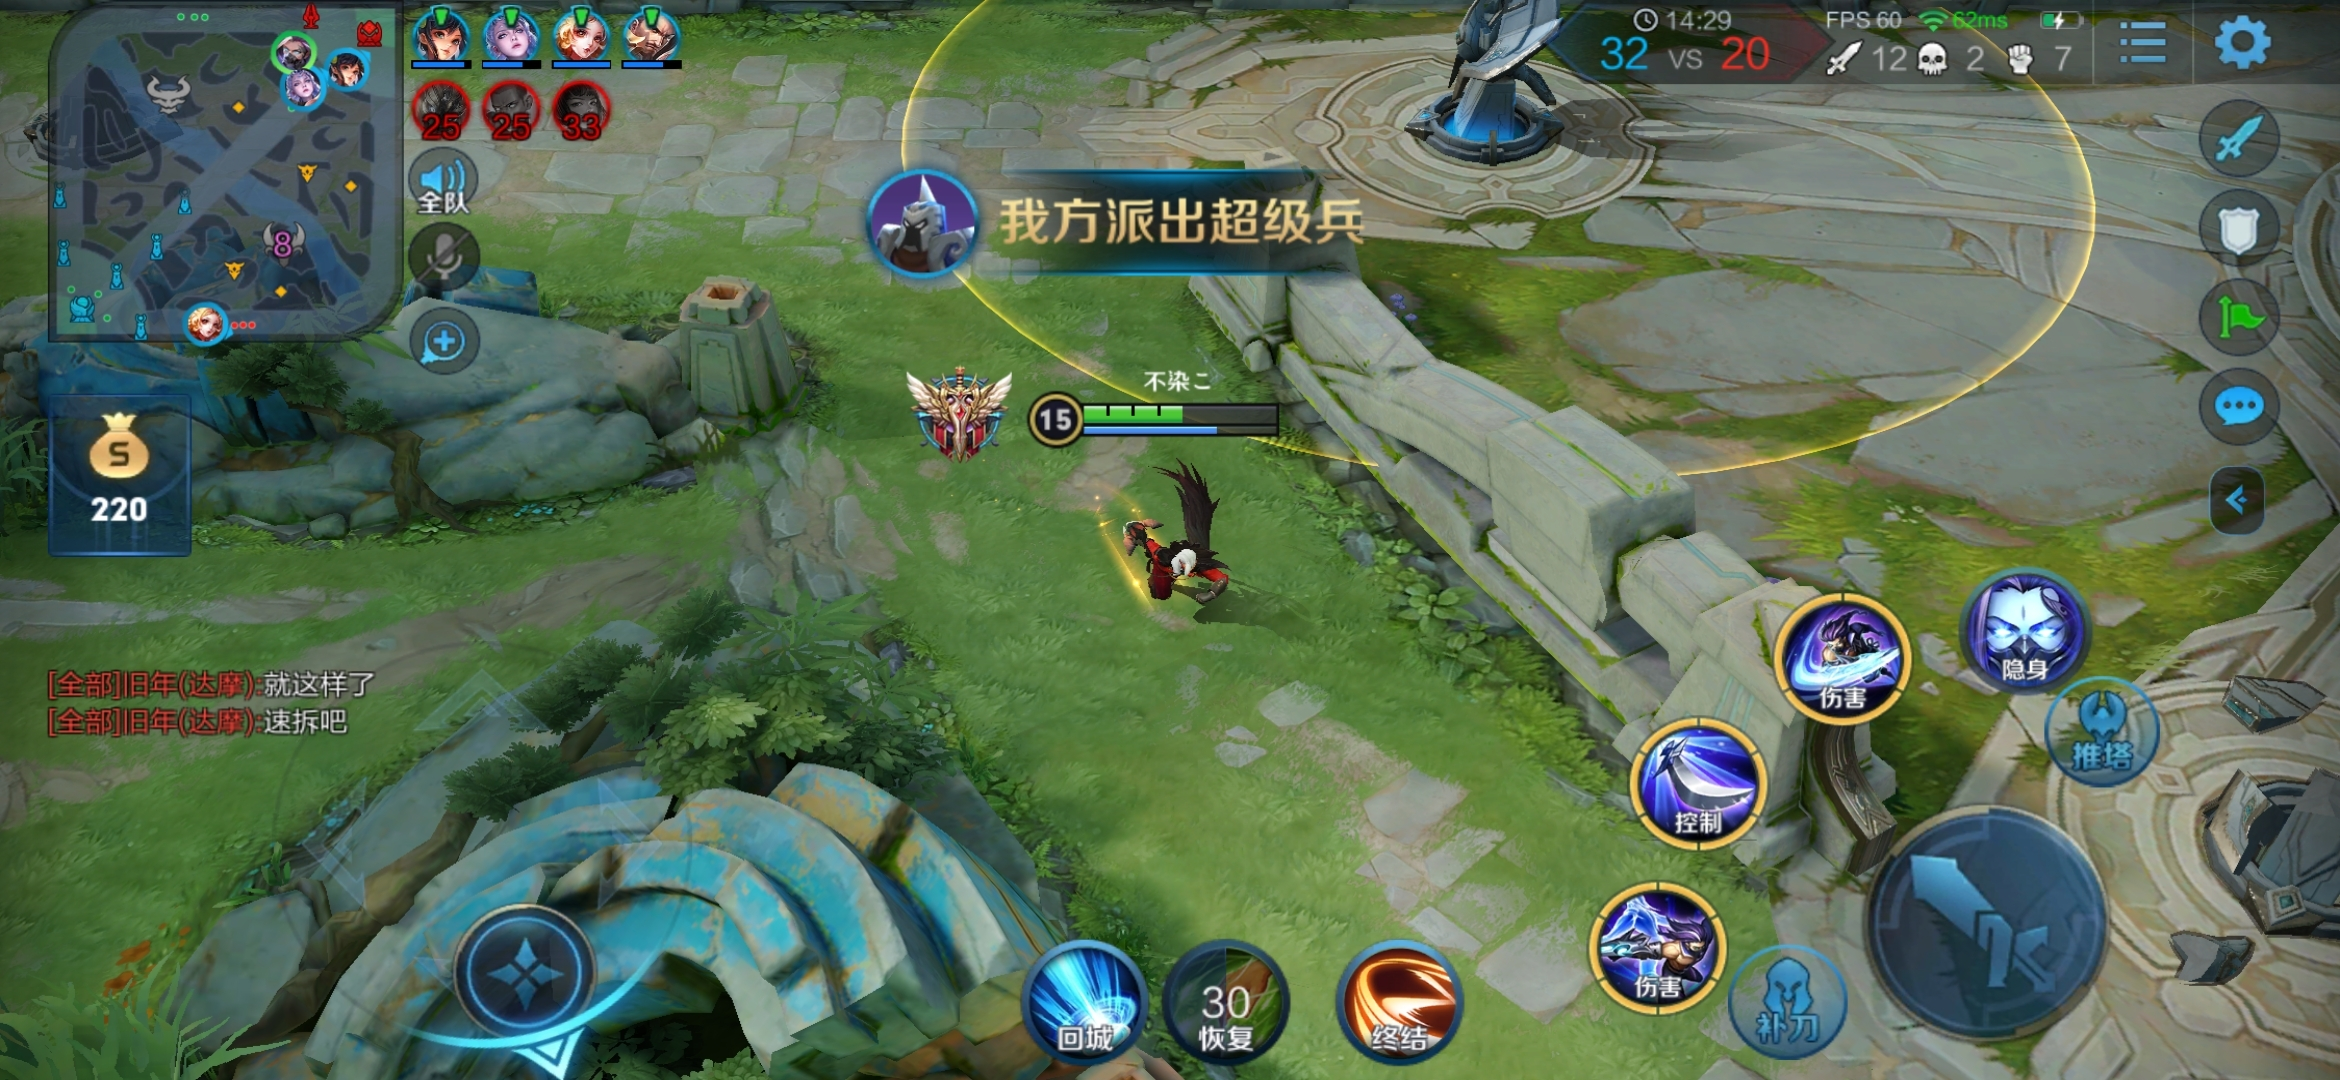 Screenshot_20200511_125247_com.tencent.tmgp.sgame.jpg